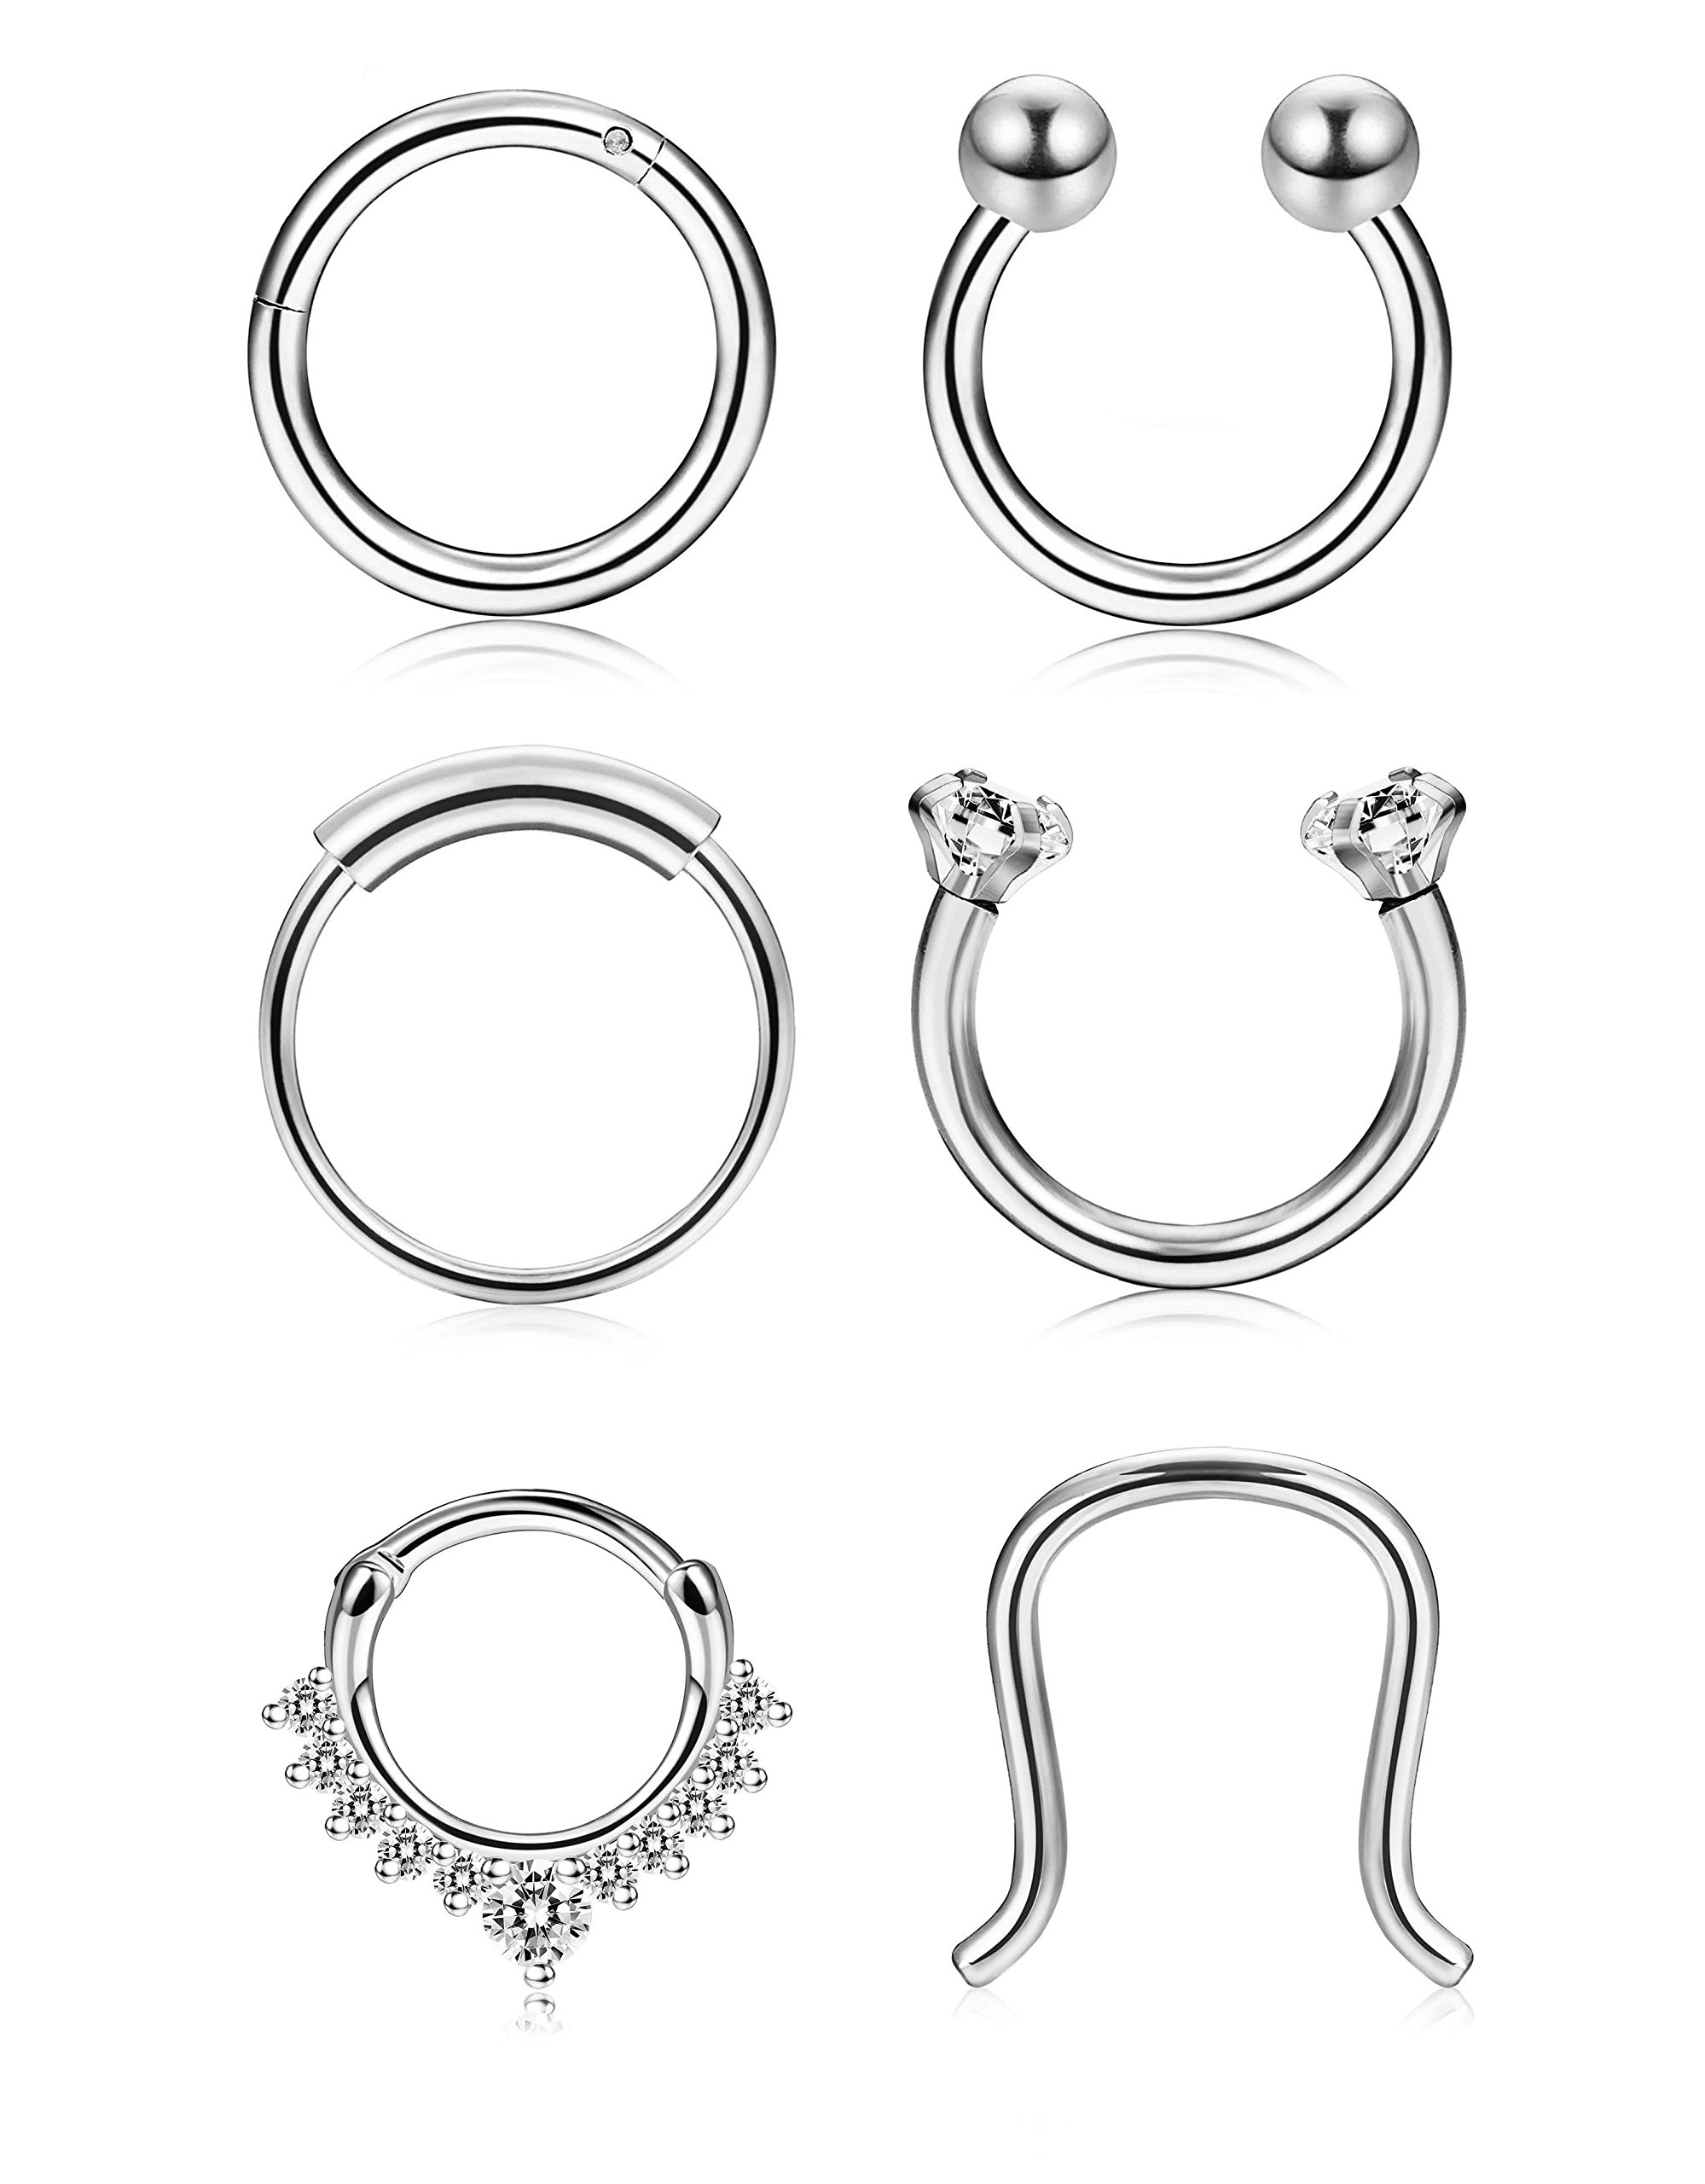 Thunaraz 4-6Pcs 316L Stainless Steel Septum Piercing Nose Rings Hoop Cartilage Tragus Retainer Body Piercing Jewelry 8MM 16G (E:6Pcs Silver Tone (Inner:10MM))